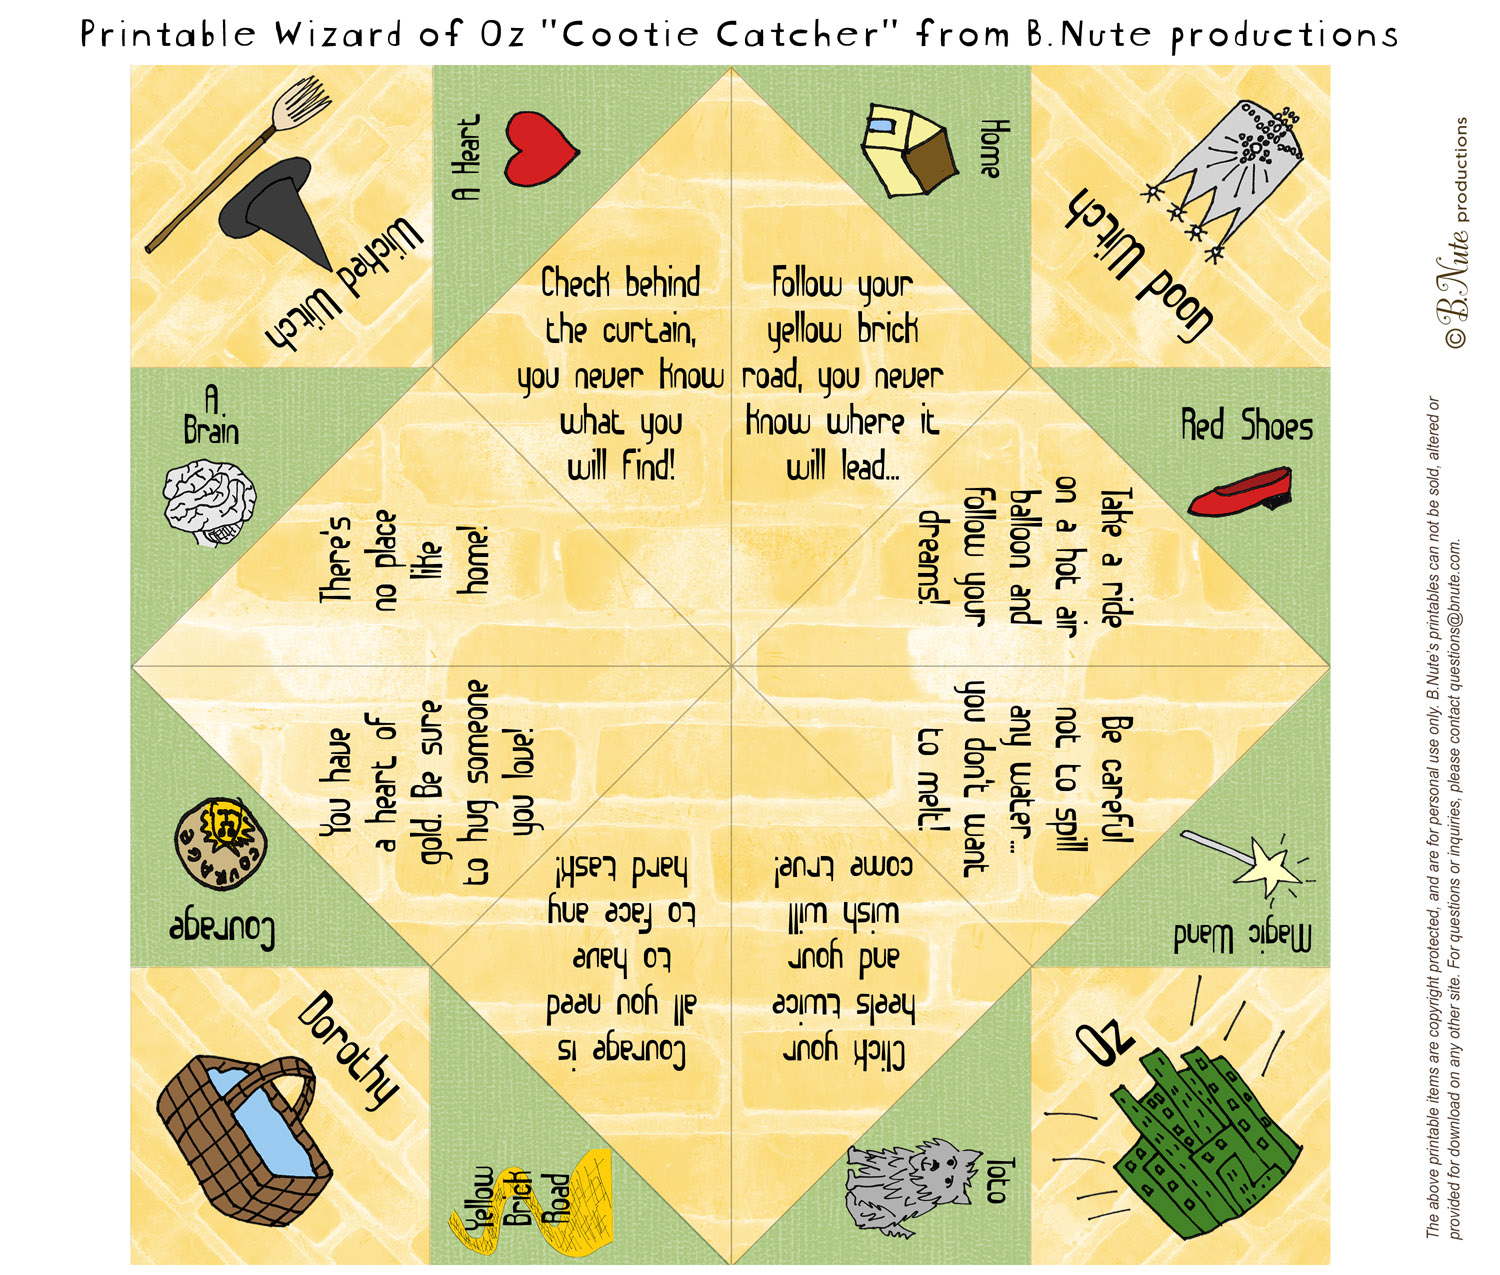 Free Printable Wizard of Oz Cootie Catcher/Fortune Teller by B.Nute  title=